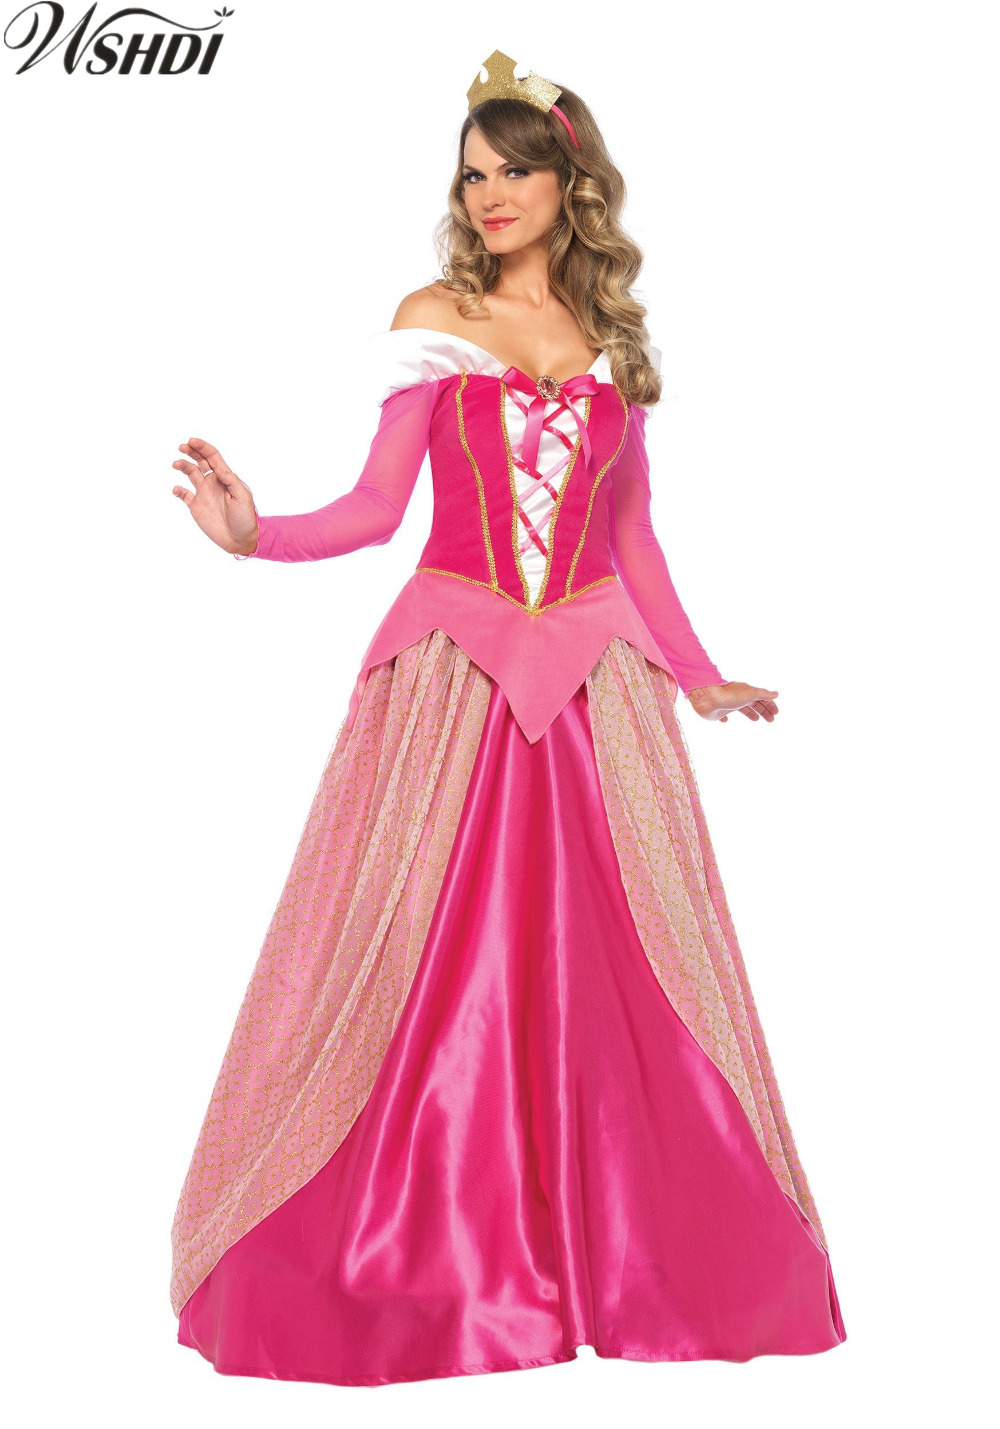 Girls Red Queen Princess Ball Gown Fairytale Medieval Deluxe Christmas Costume